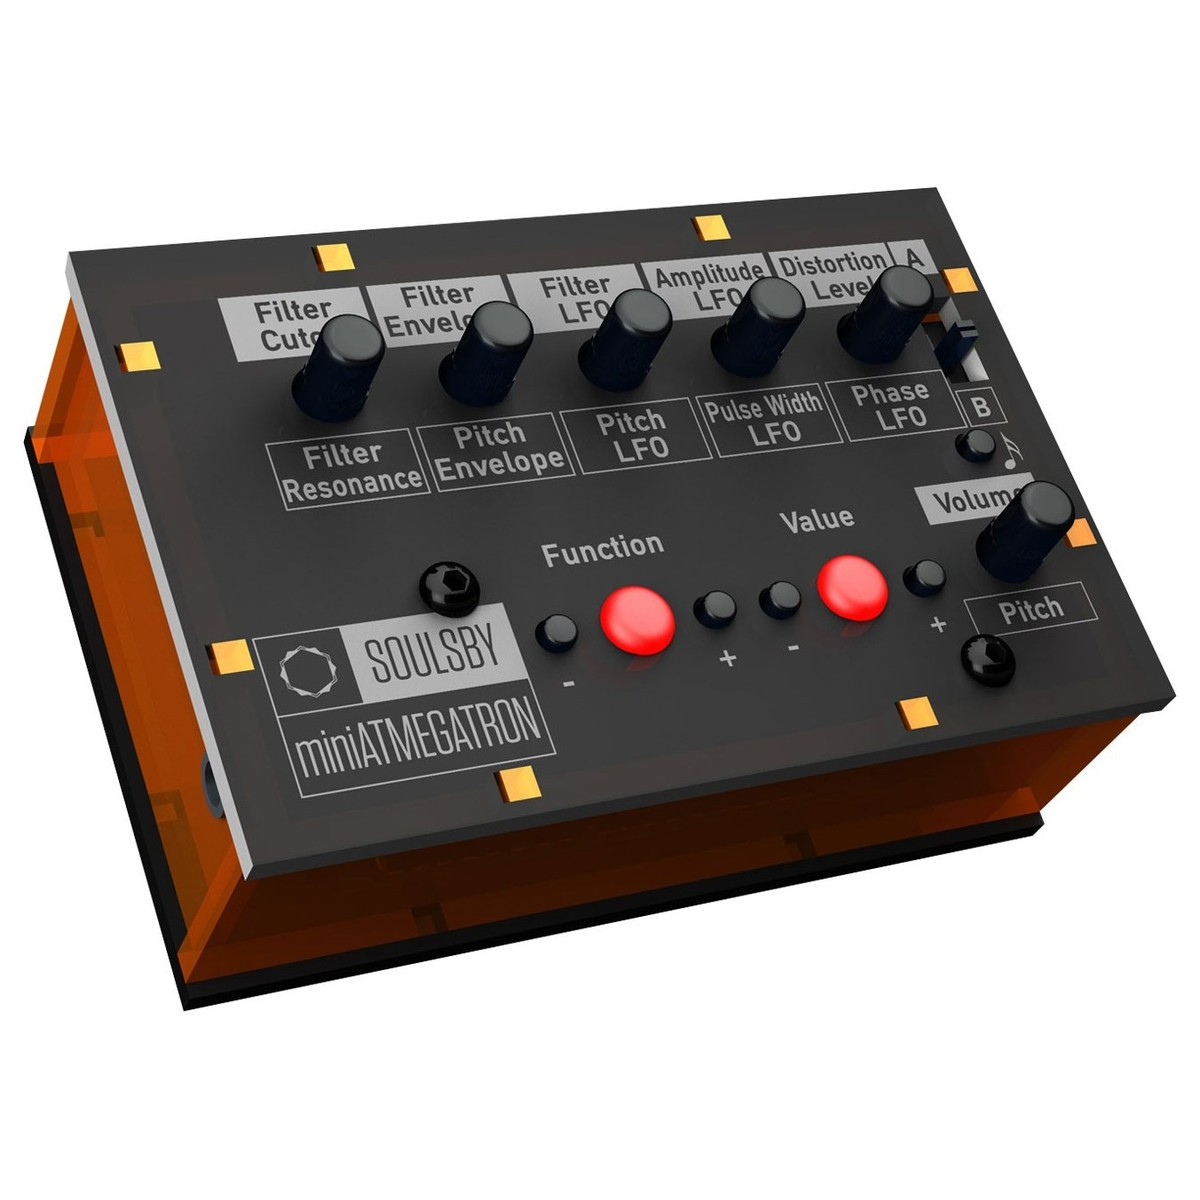 Hack me electronics has announced that that the rockit synthesizer - a diy 8-bit synthesizer project